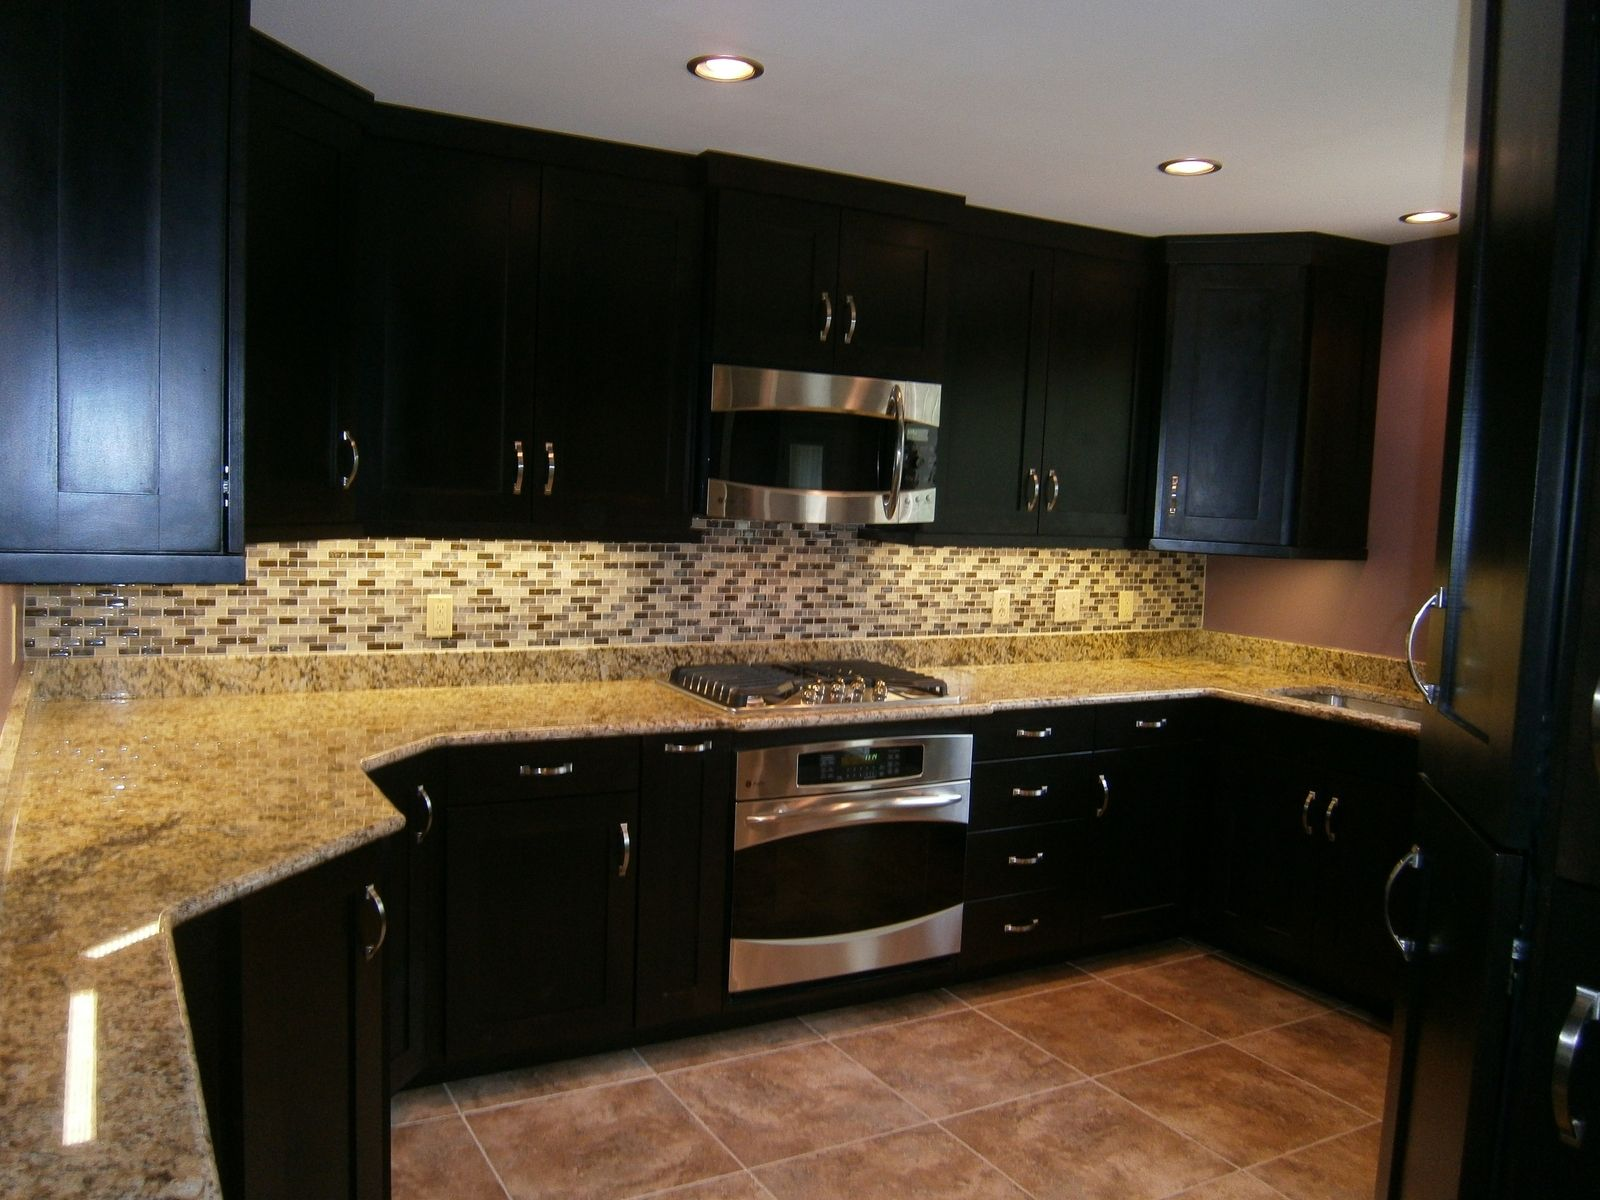 staining kitchen cabinets Excellent White Gray Glass Tile Backsplash And Brown Mosaic Granite Countertop As Well As Cool Espresso Kitchen Cabinets And Microwave Shelves And Ceiling